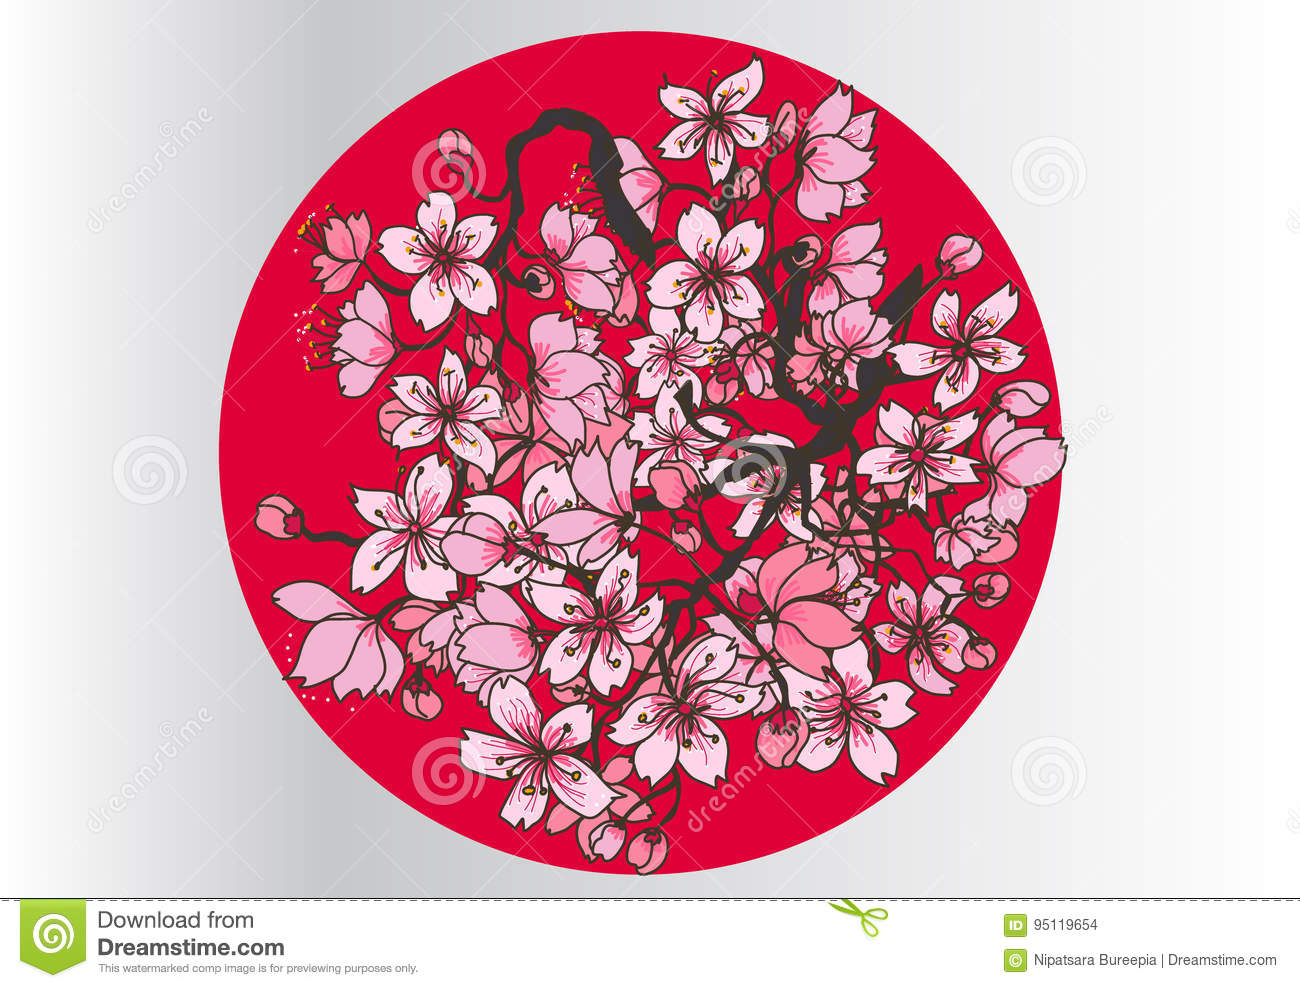 Hand Drawn Sakura Plant In Circle Stock Vector - Illustration of ...